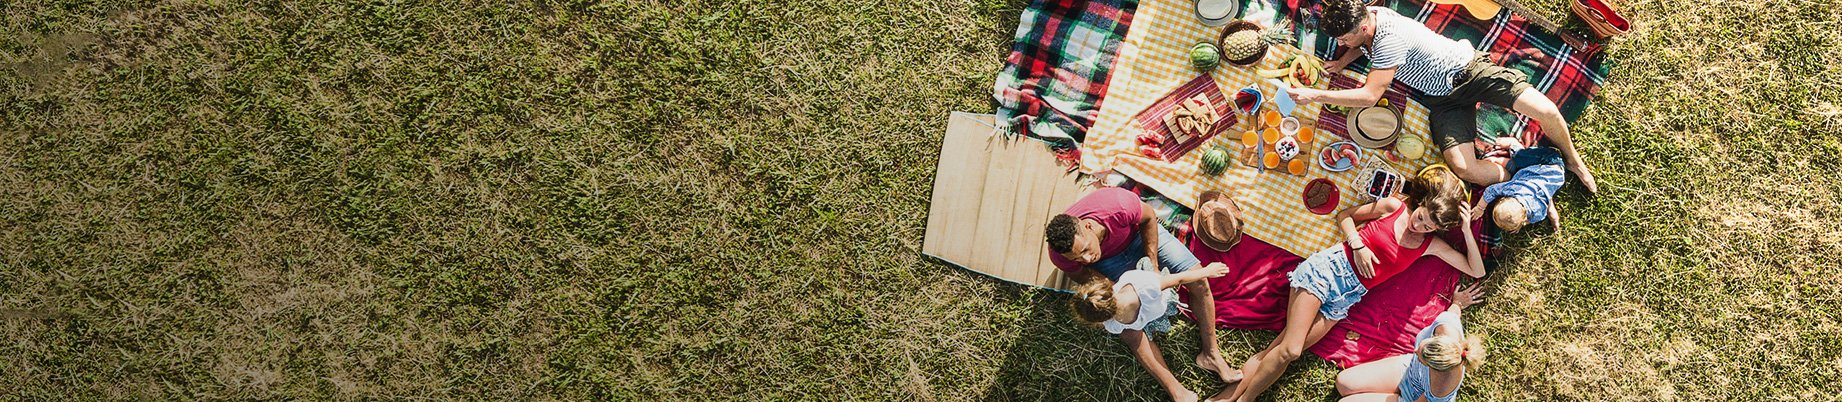 BEST SUMMER PICNIC SPOTS IN SOUTH AFRICA